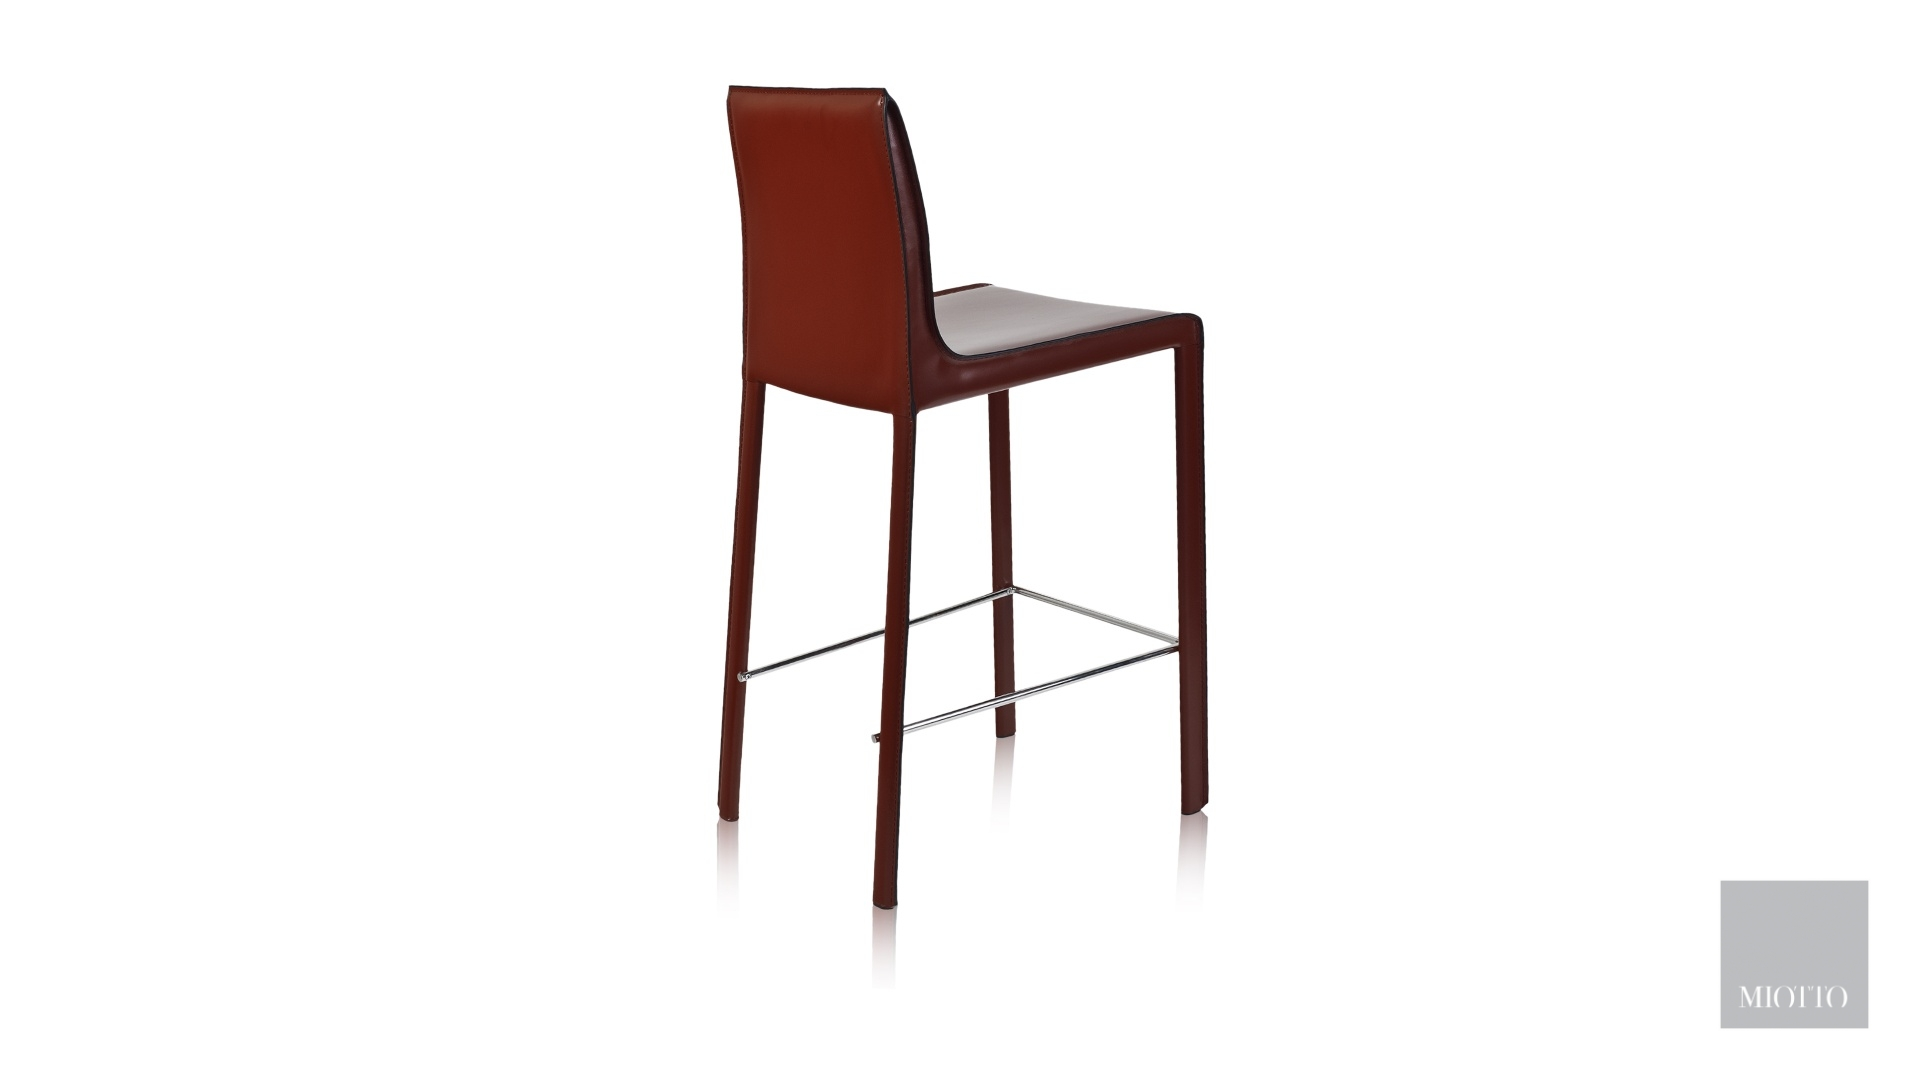 miotto_Ardini bar stool burgundy miotto furniture back t